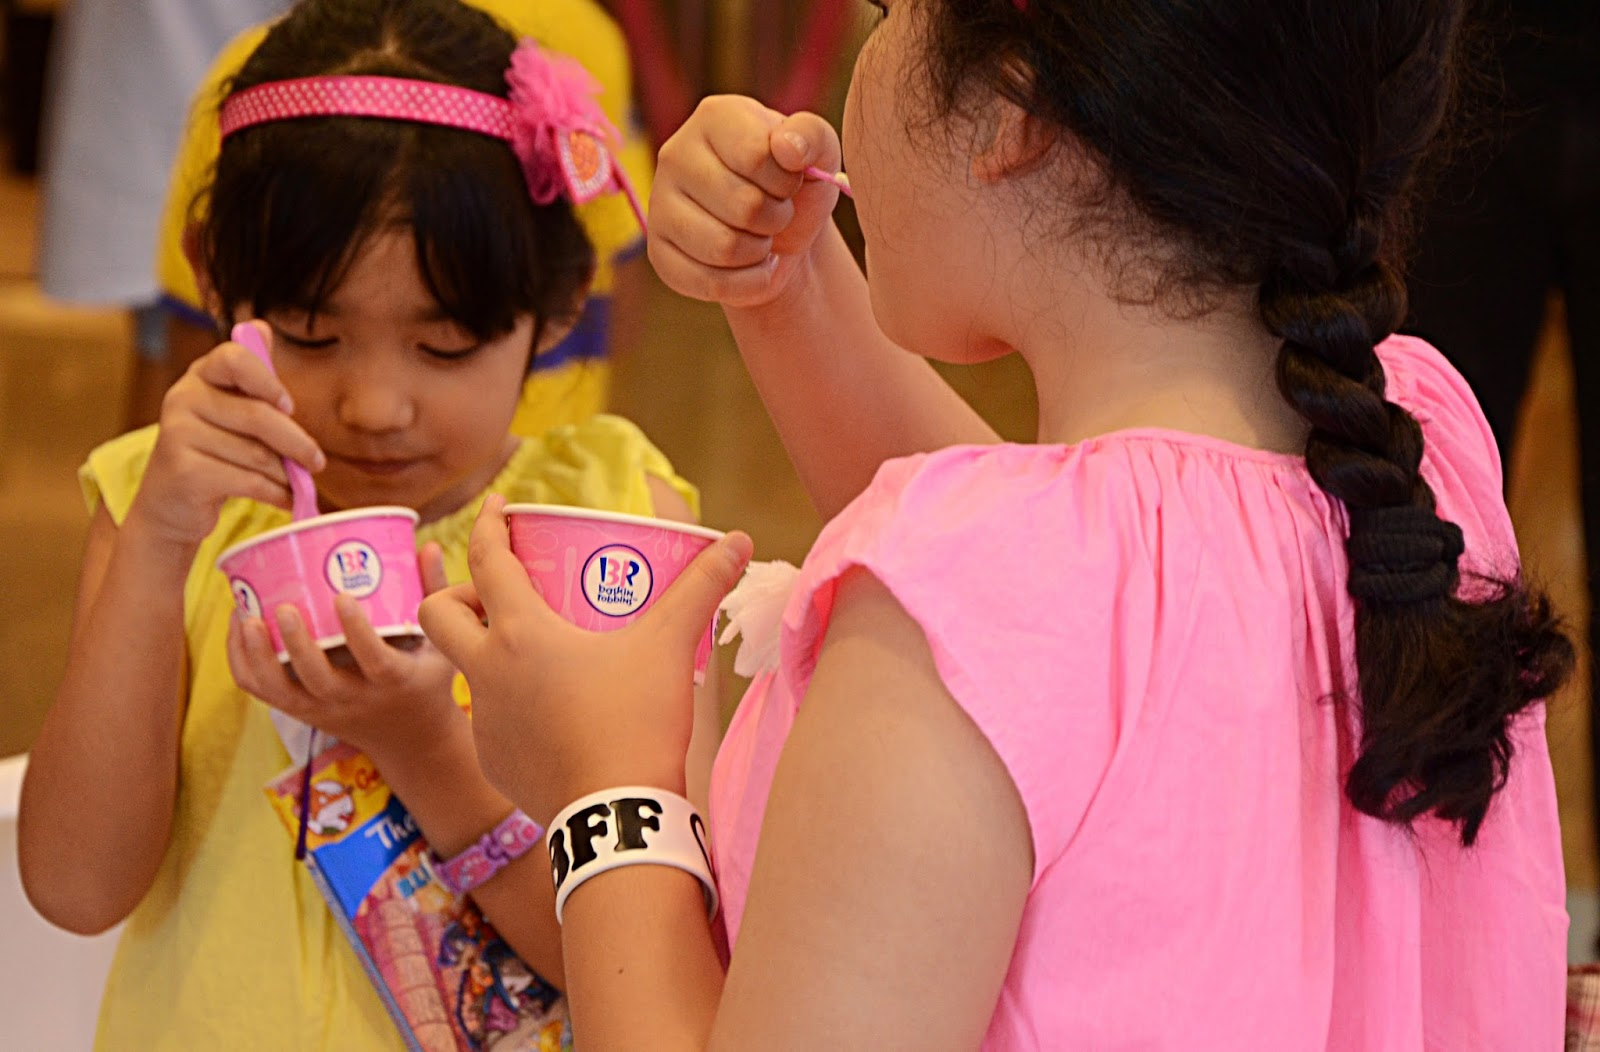 Let us help Baskin-Robbins bring smiles to the lives of 31 children